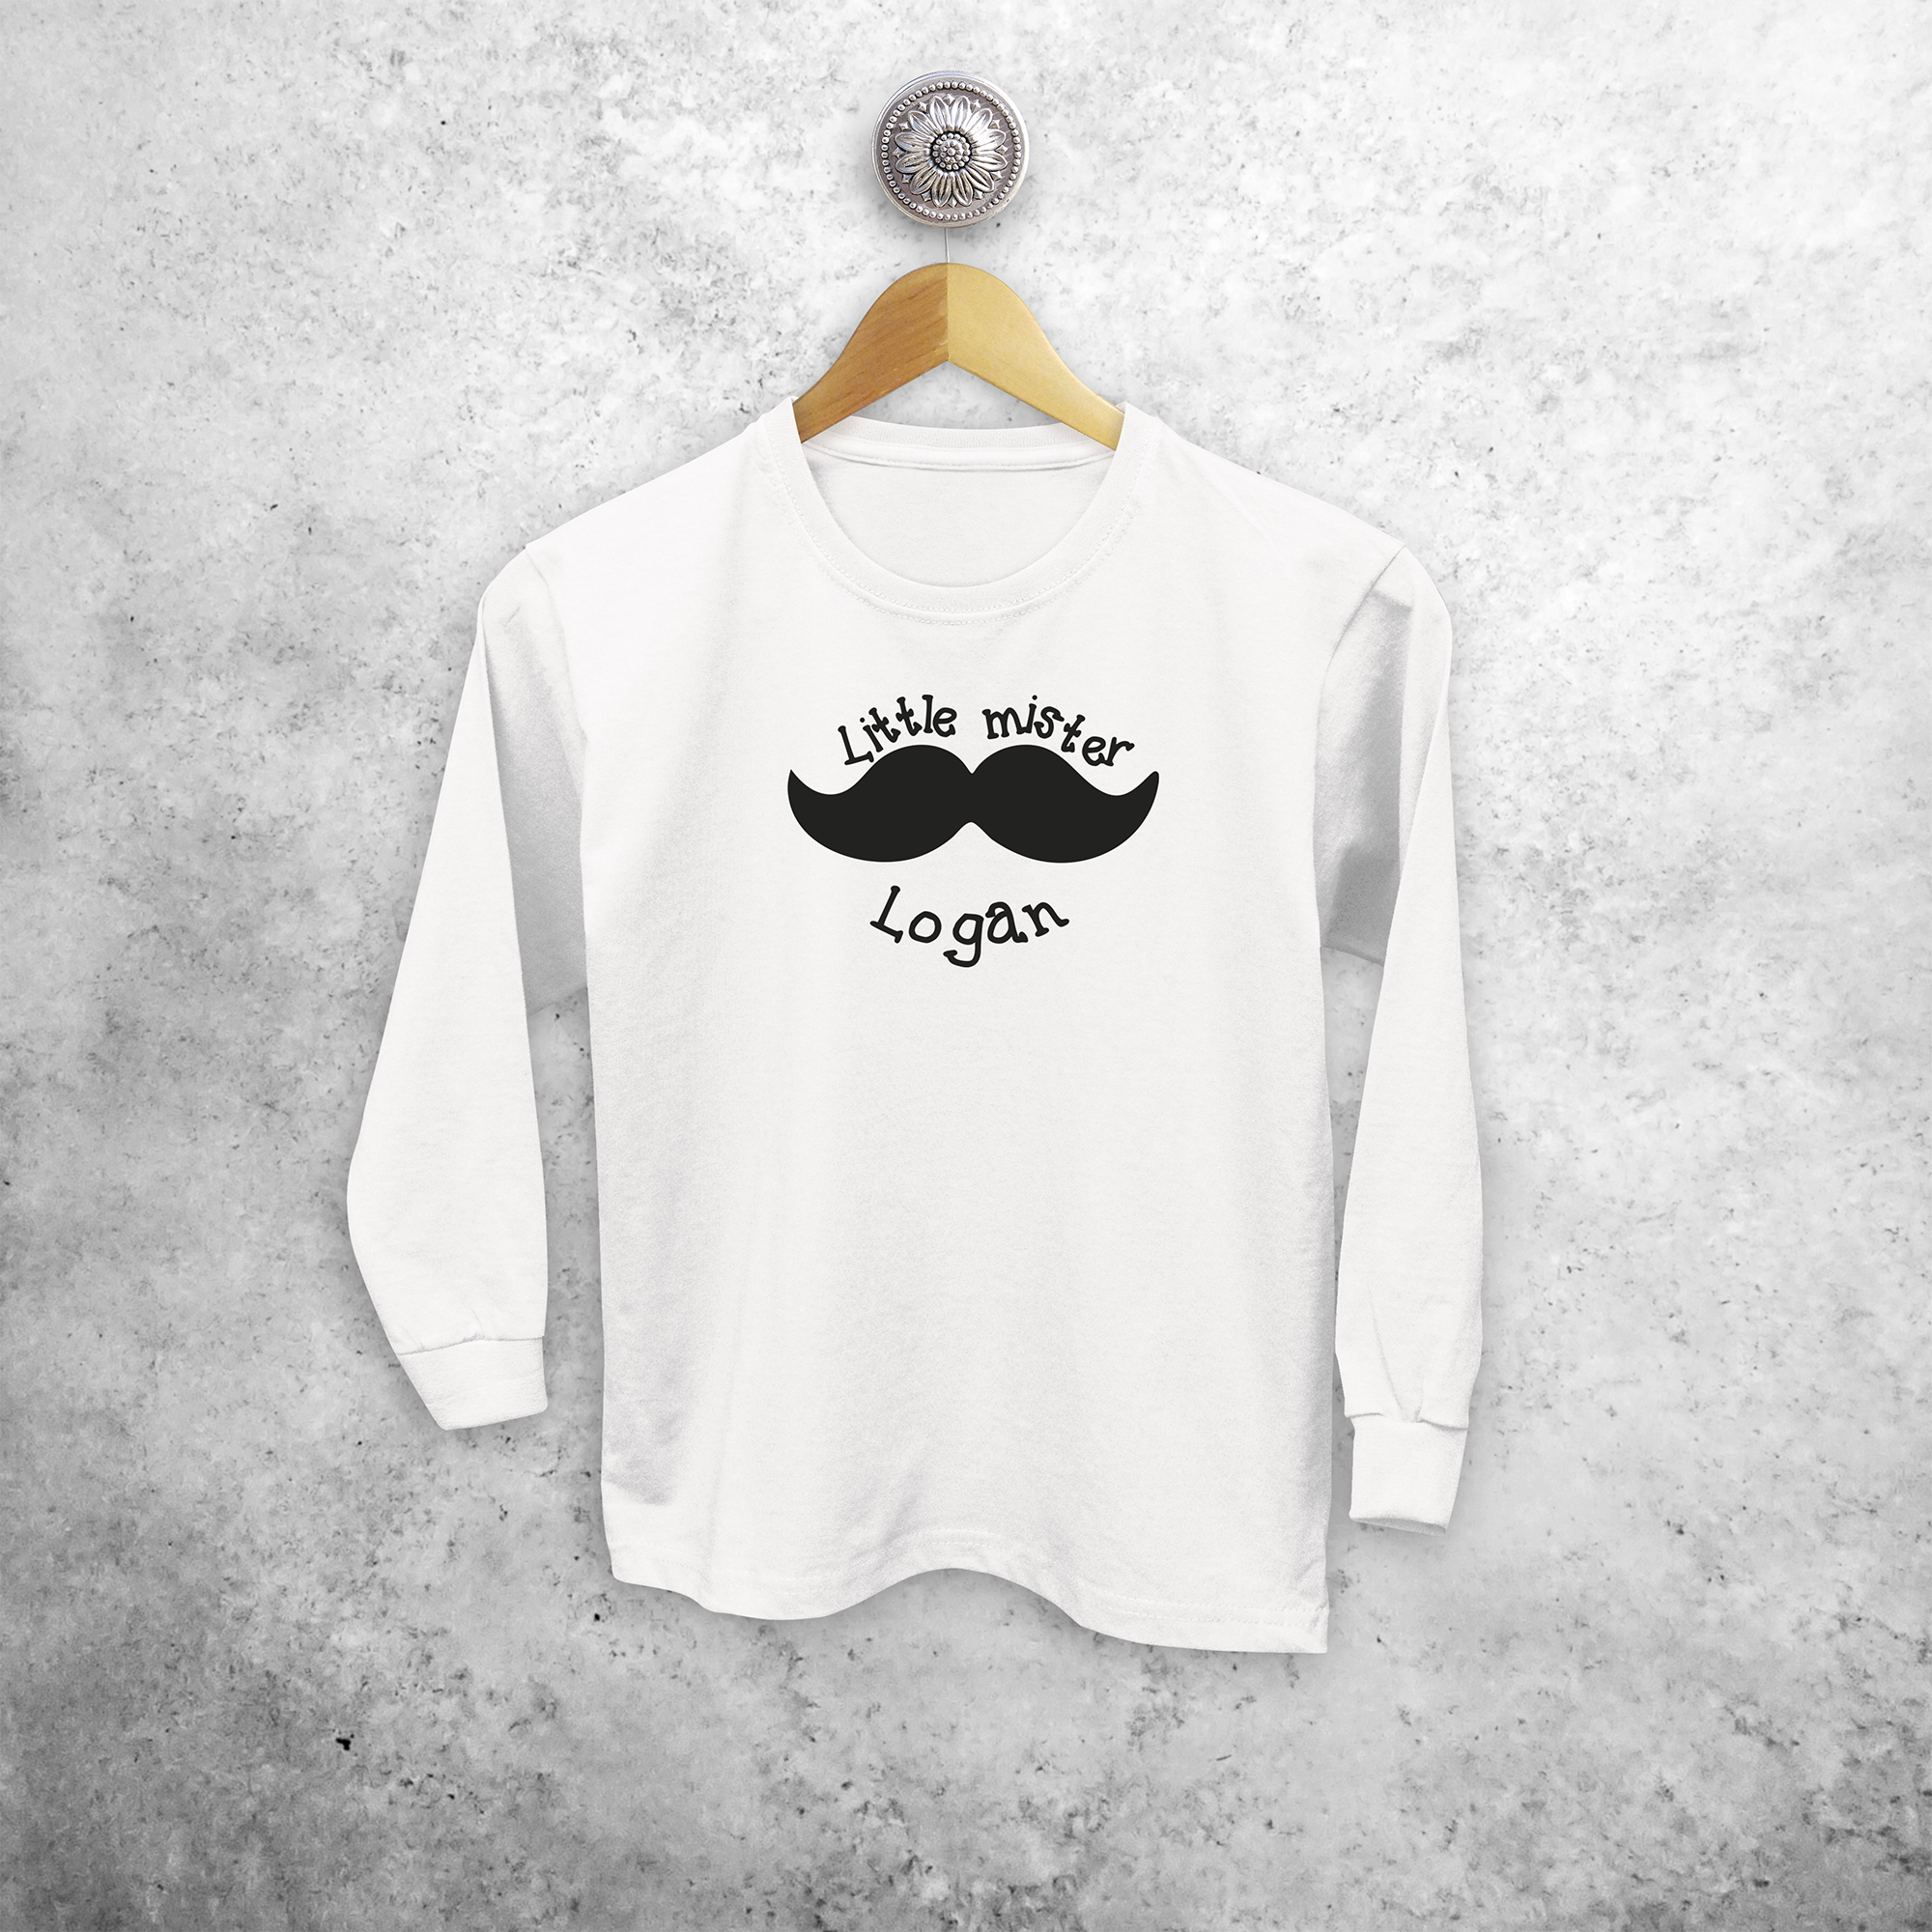 'Little mister' kids longsleeve shirt